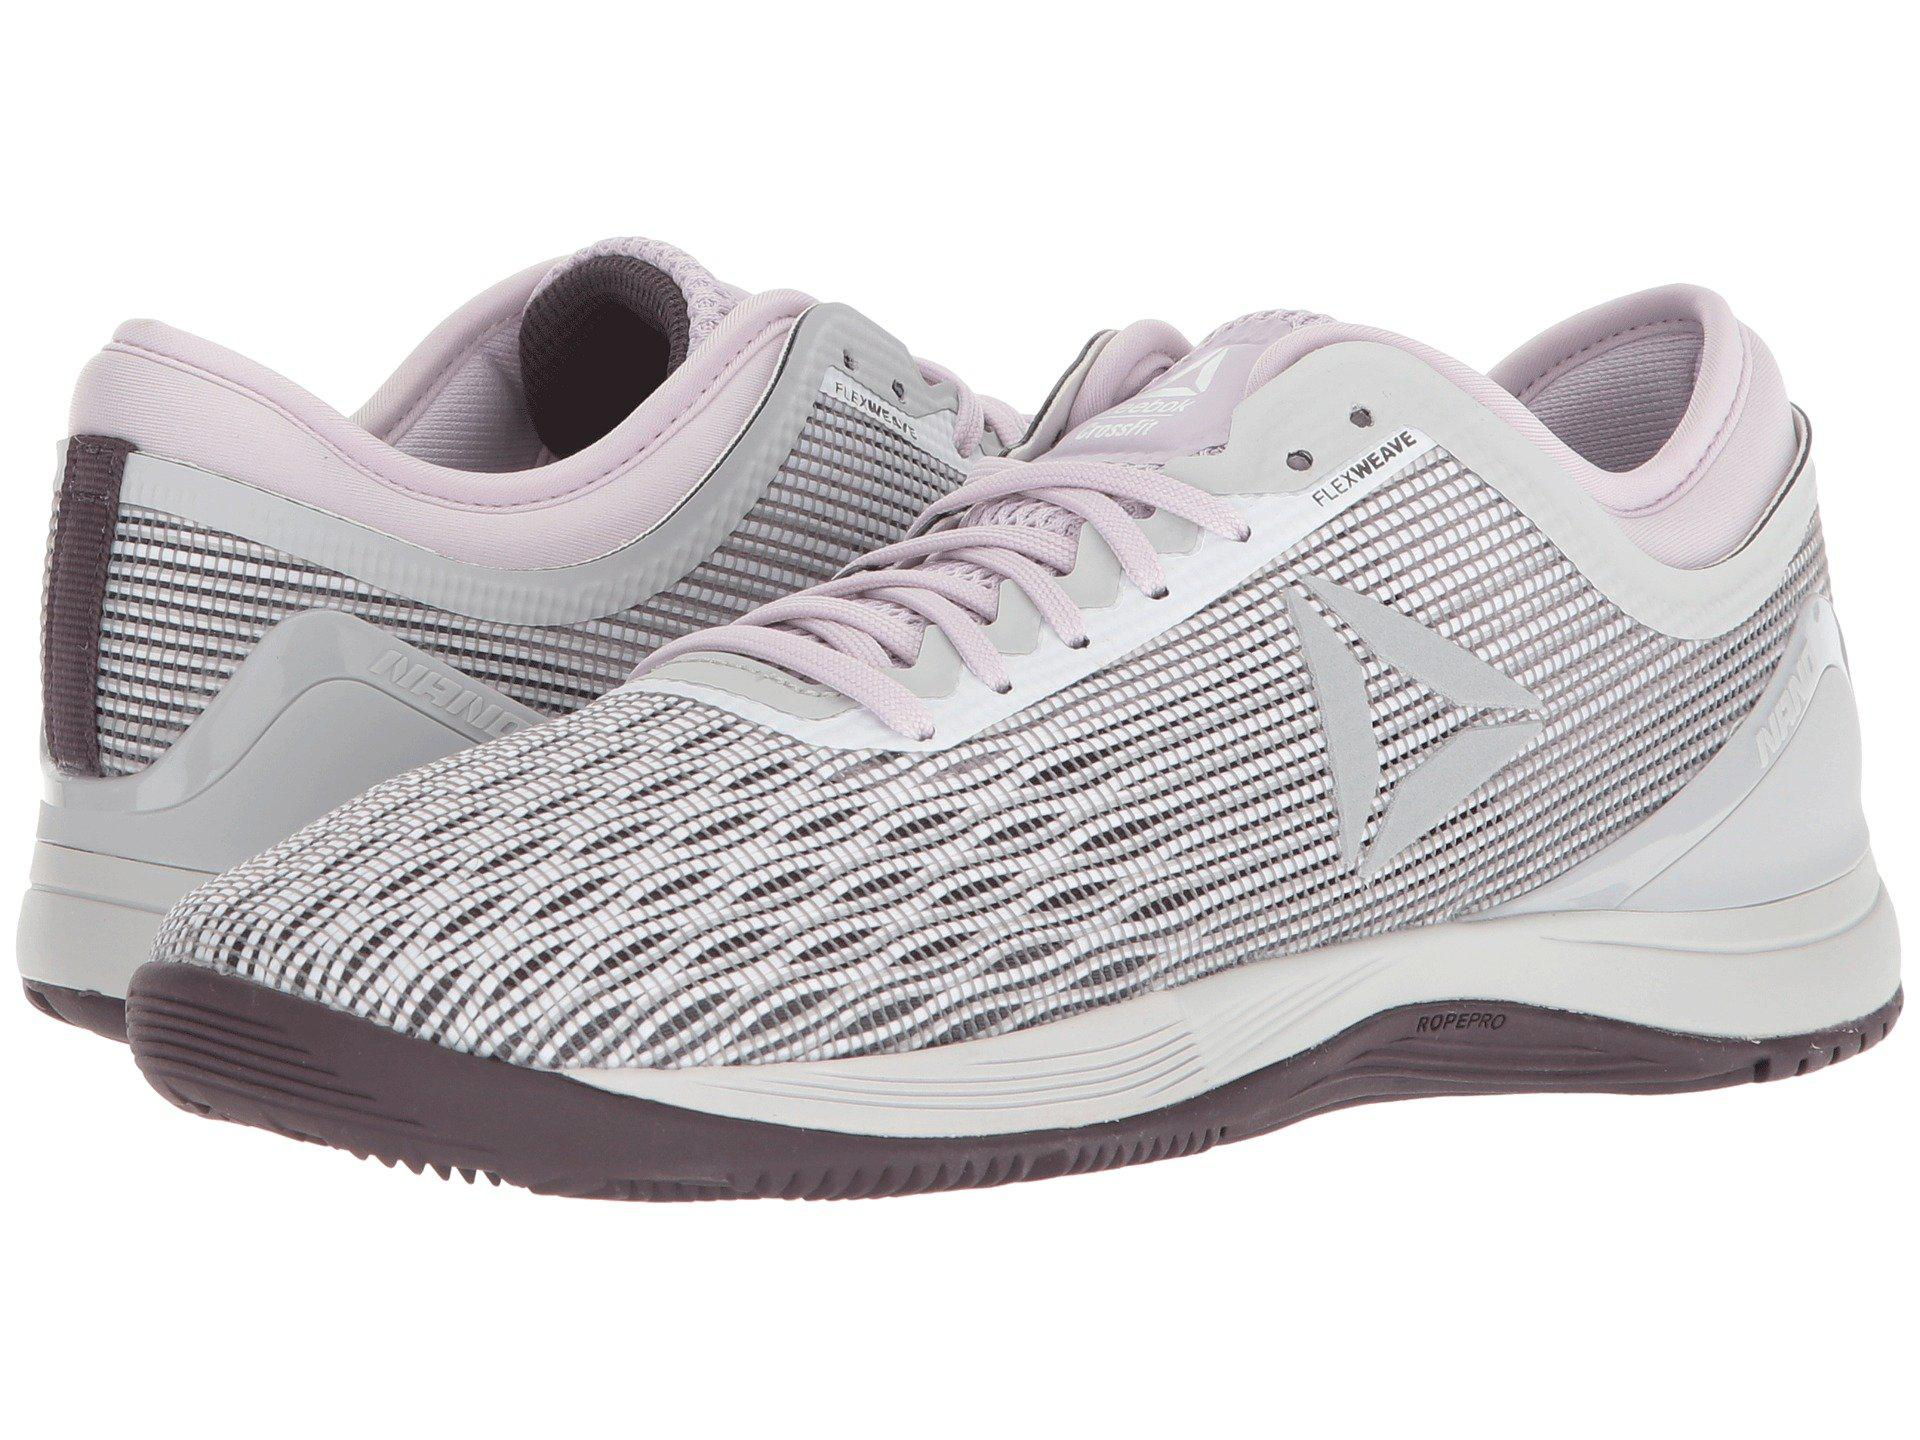 406bbb1d4c82 Lyst - Reebok Crossfit(r) Nano 8.0 (twisted Berry twisted Pink white ...